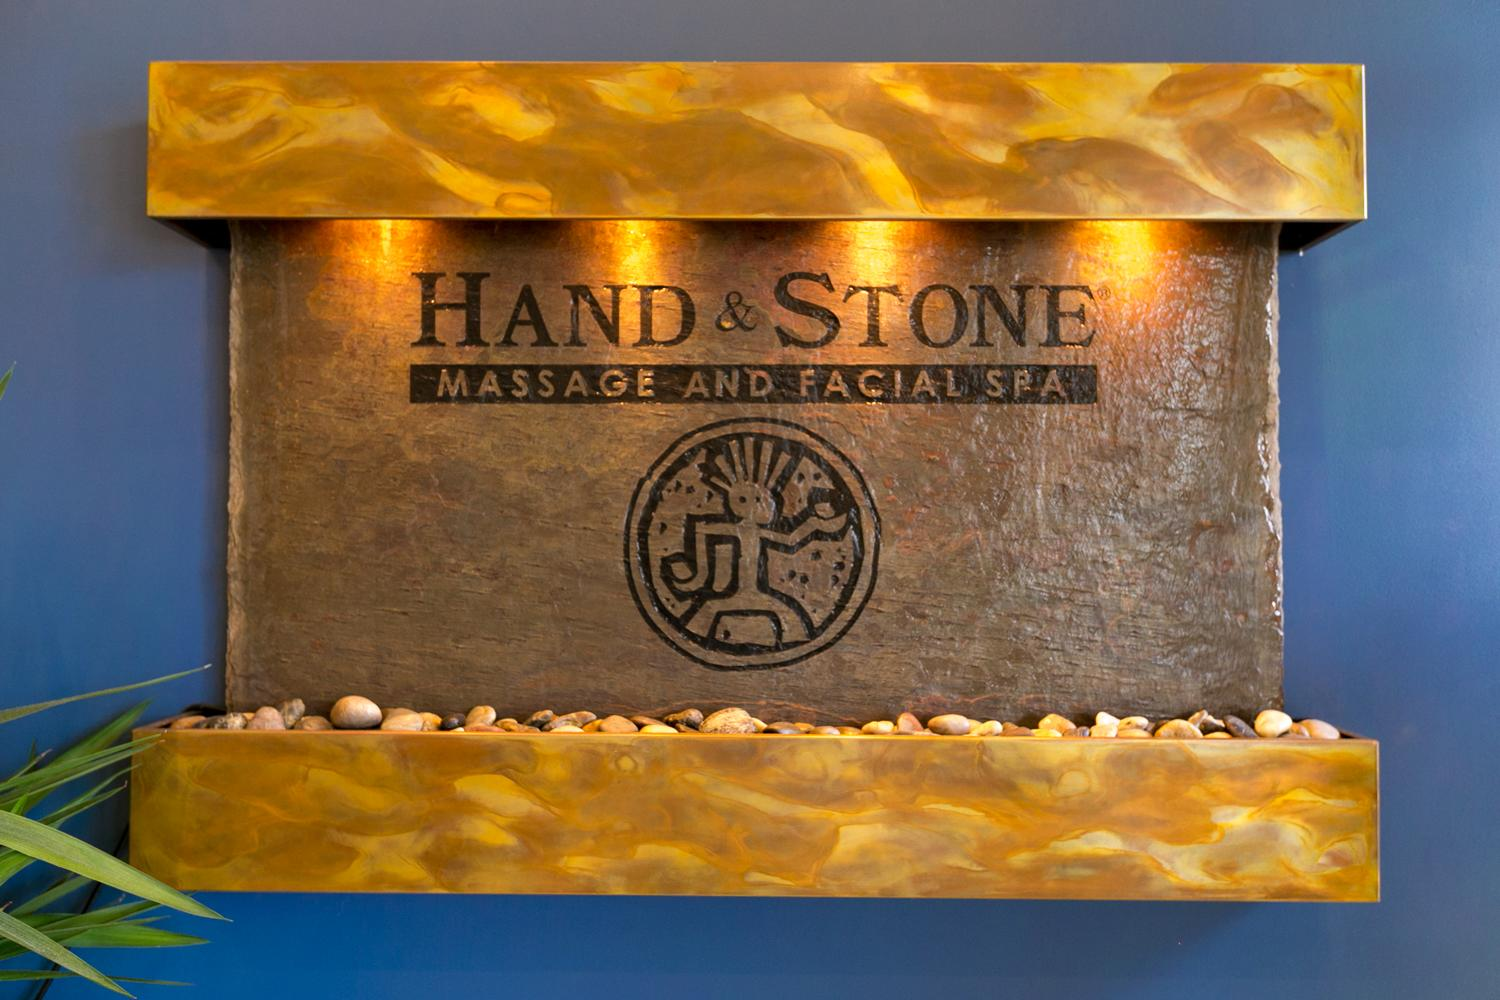 Each Hand and Stone is independently owned and operated. Join our Healthy LifeStyle Program and you can enjoy our Membership Benefits at over 330+ locations nationwide.